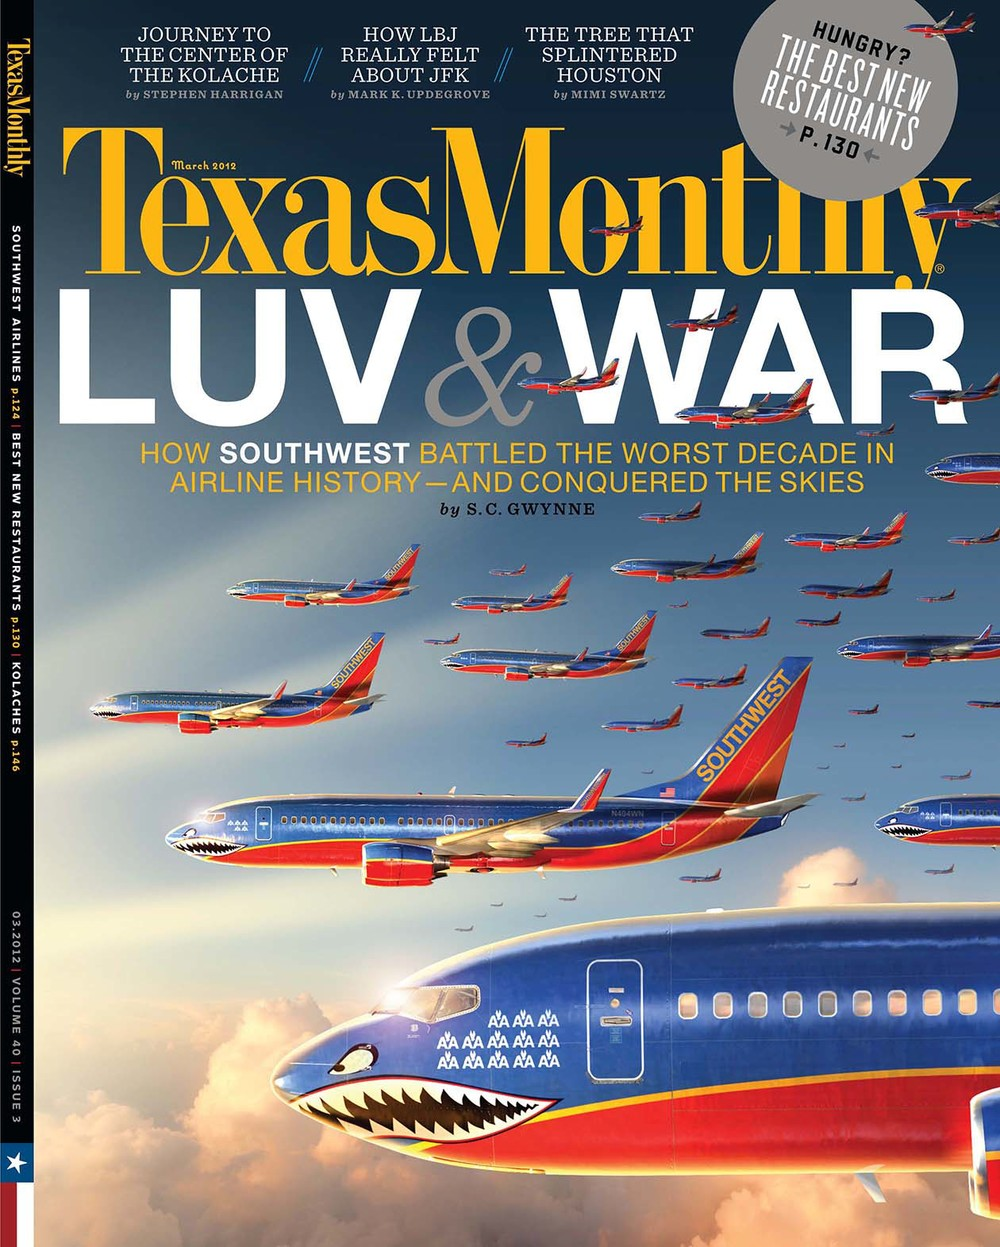 TexasMonthly_SWairlines.jpg